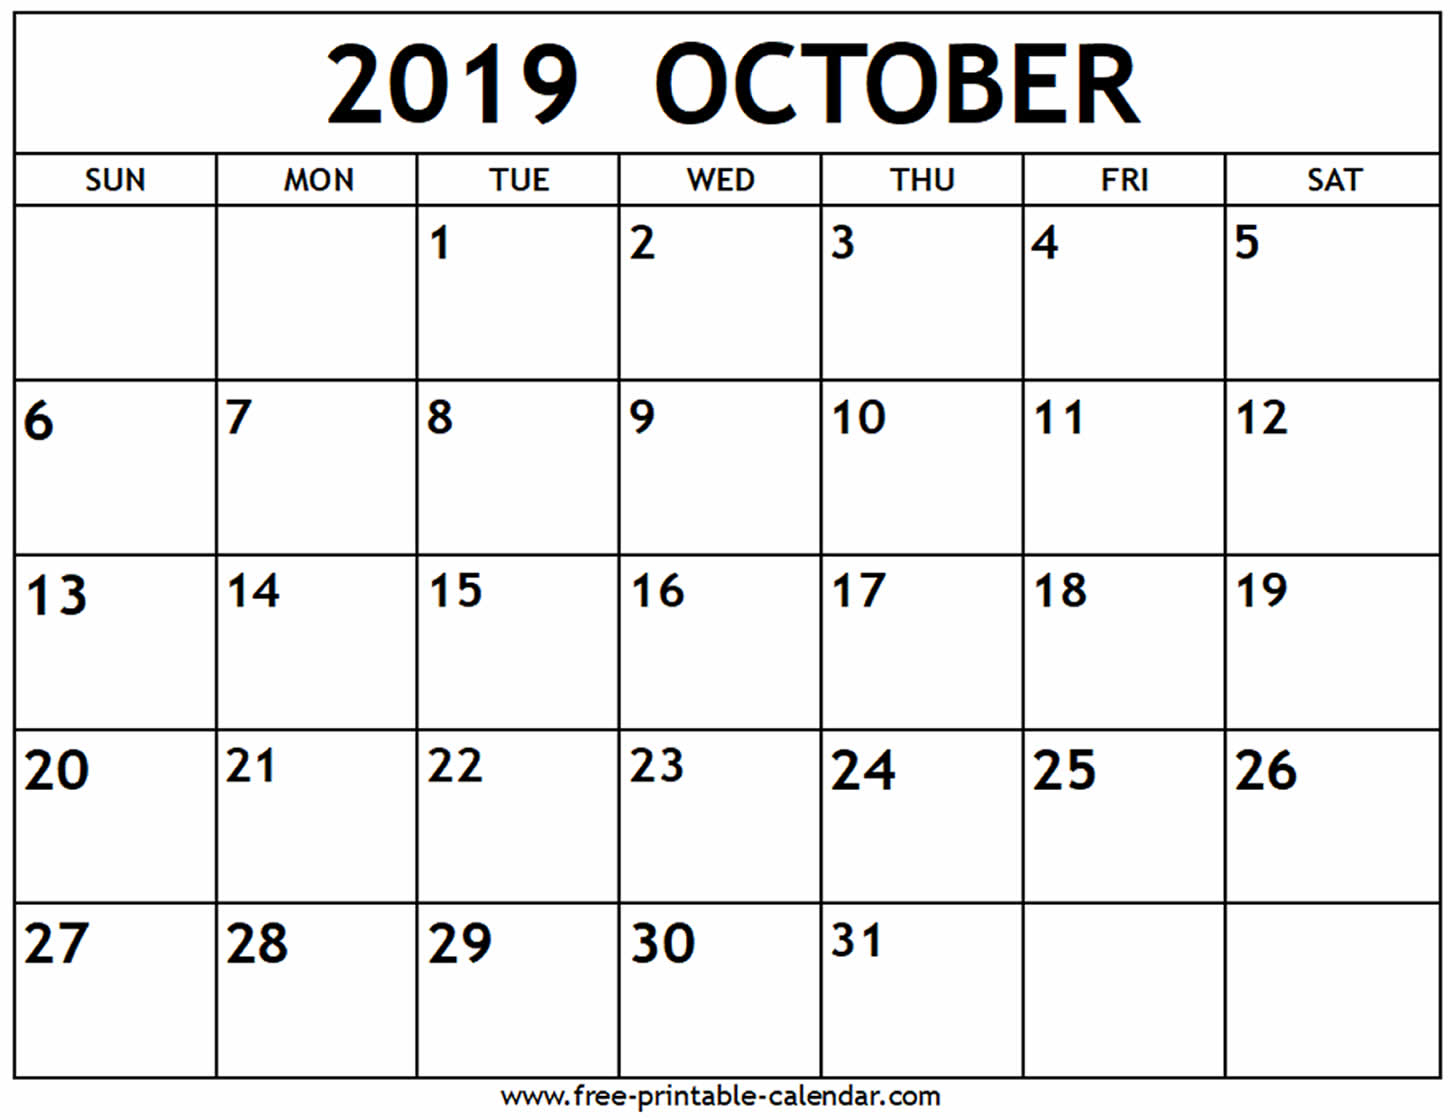 October 2019 Calendar - Free-Printable-Calendar intended for Blank Calendar For Sept